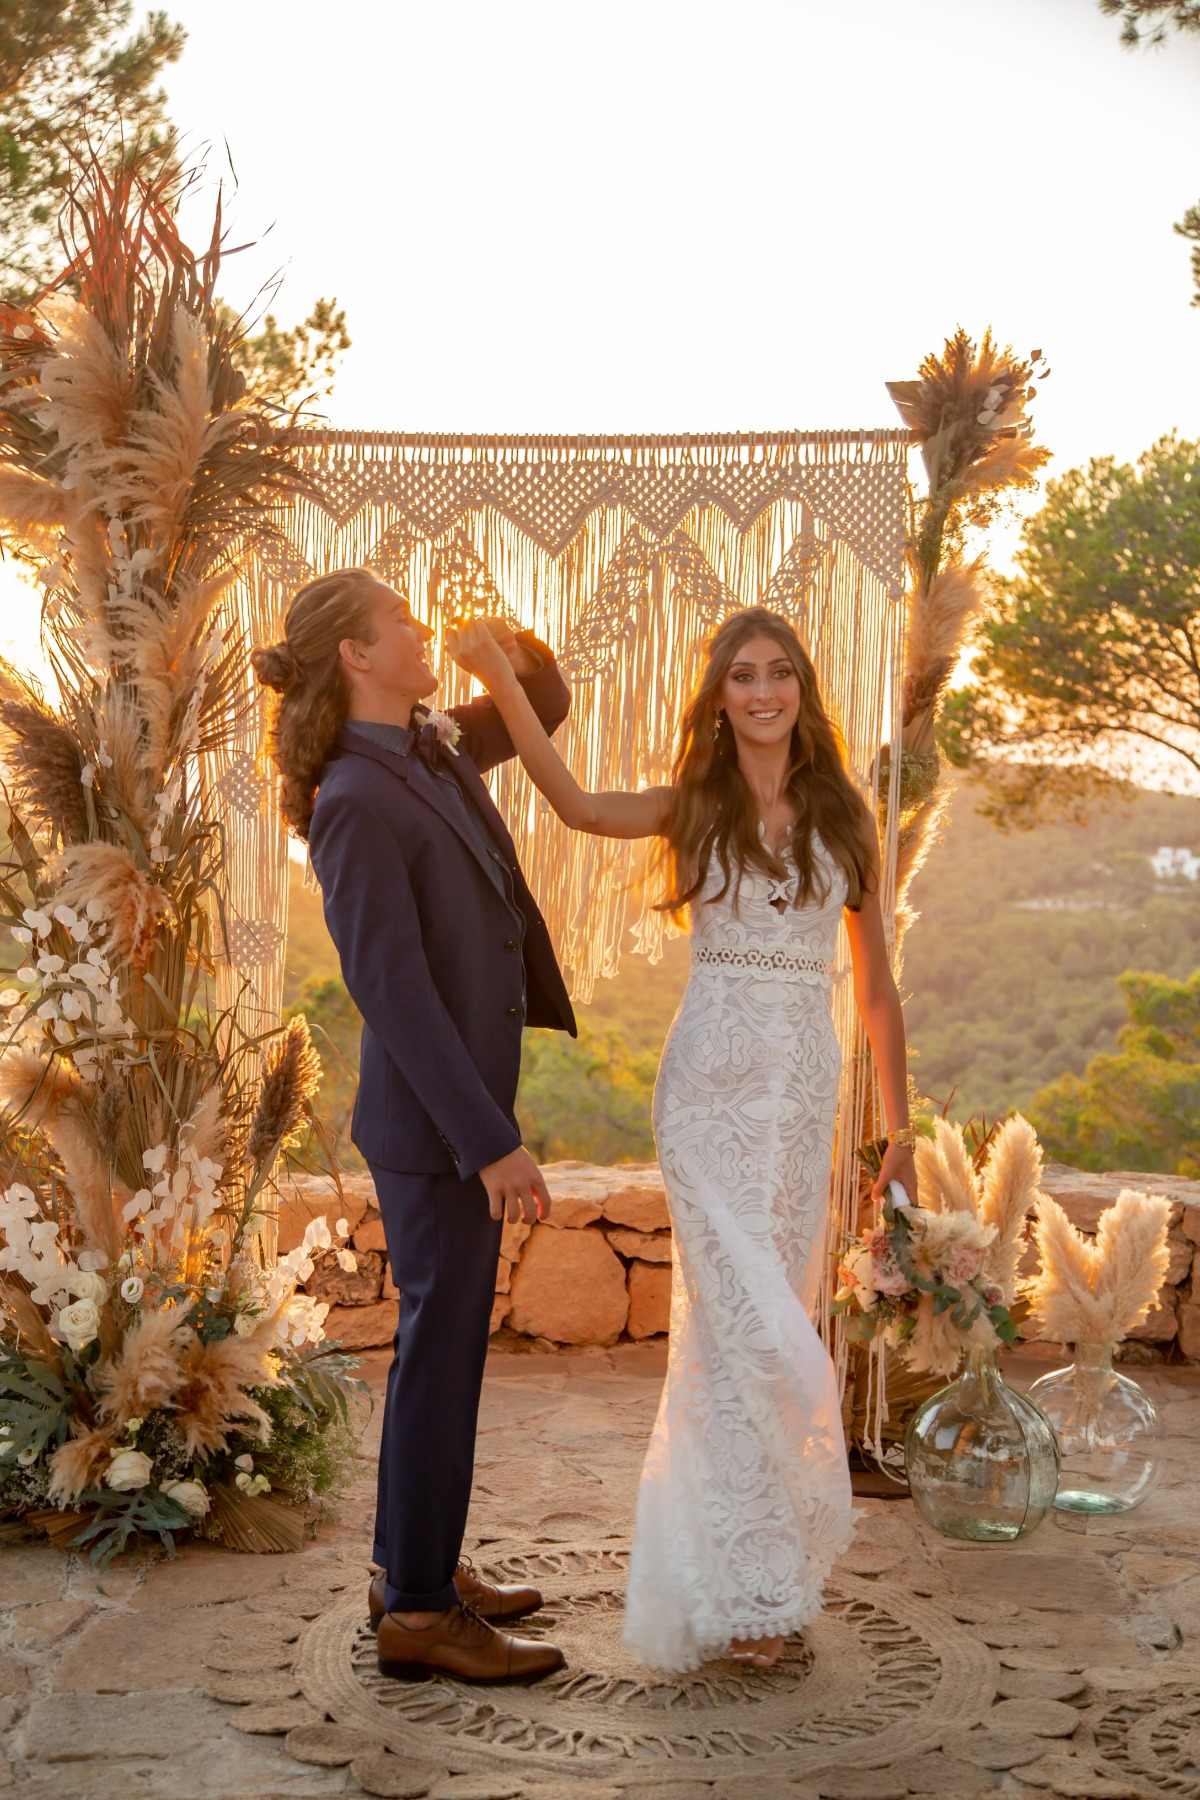 Glam Boho? It Can Be Done...Here's How